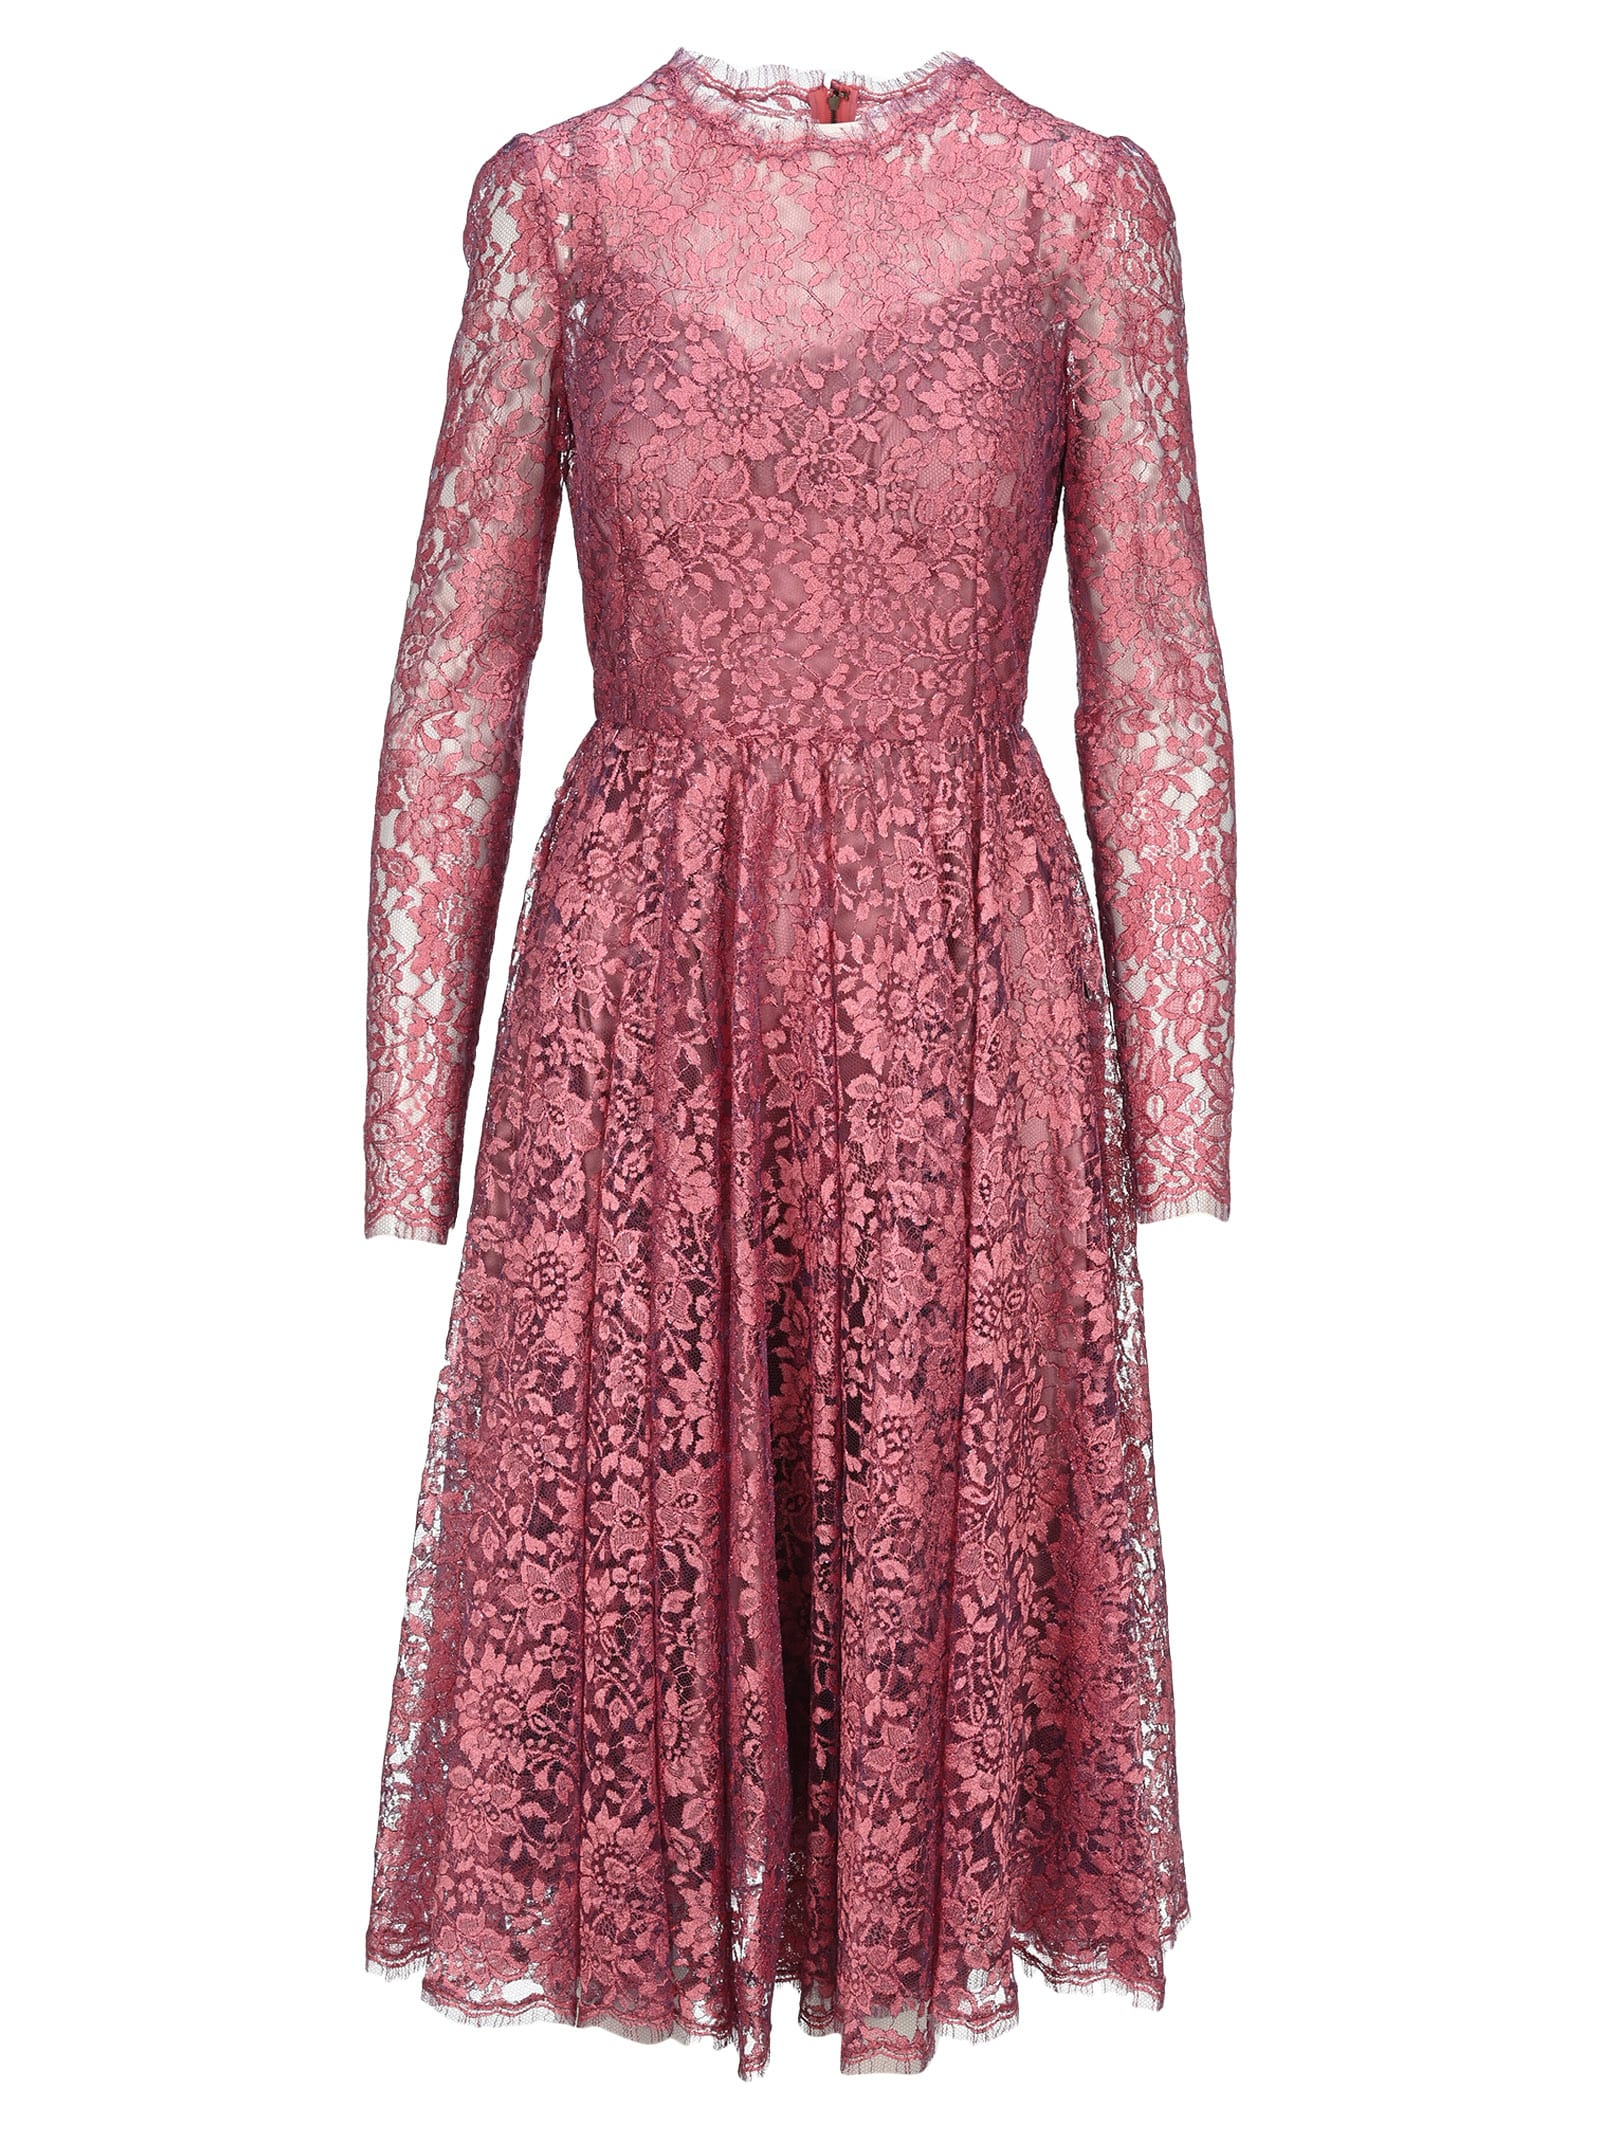 Buy Dolce & gabbana Chantilly Lamé Lace Midi Dress online, shop Dolce & Gabbana with free shipping